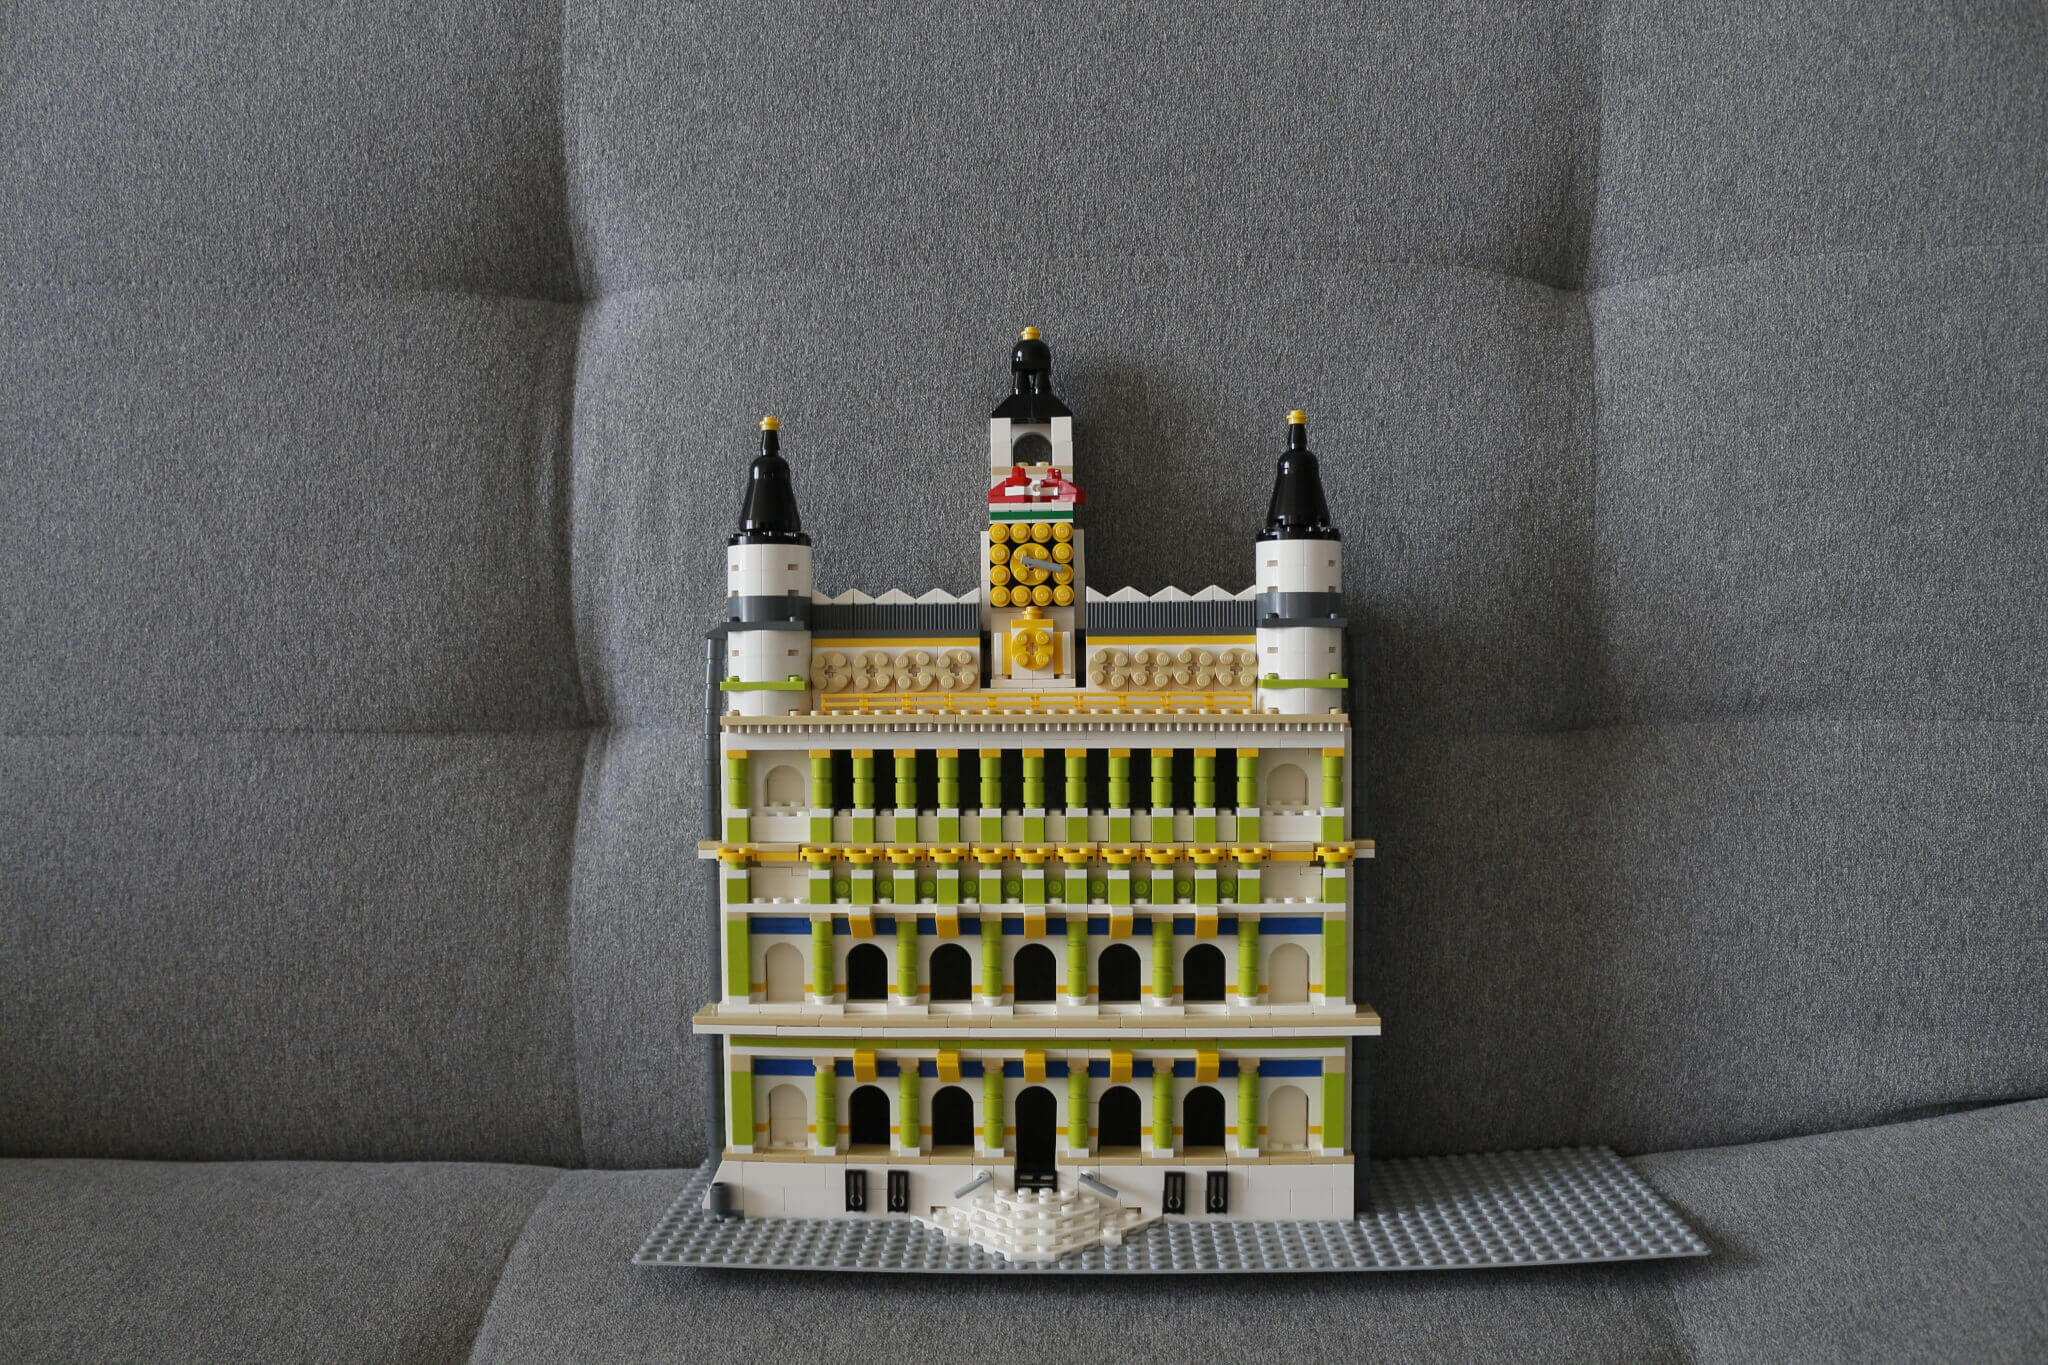 lego-castle-sets-custombricks-mockup-made-of-lego-blocks-on-request.jpg